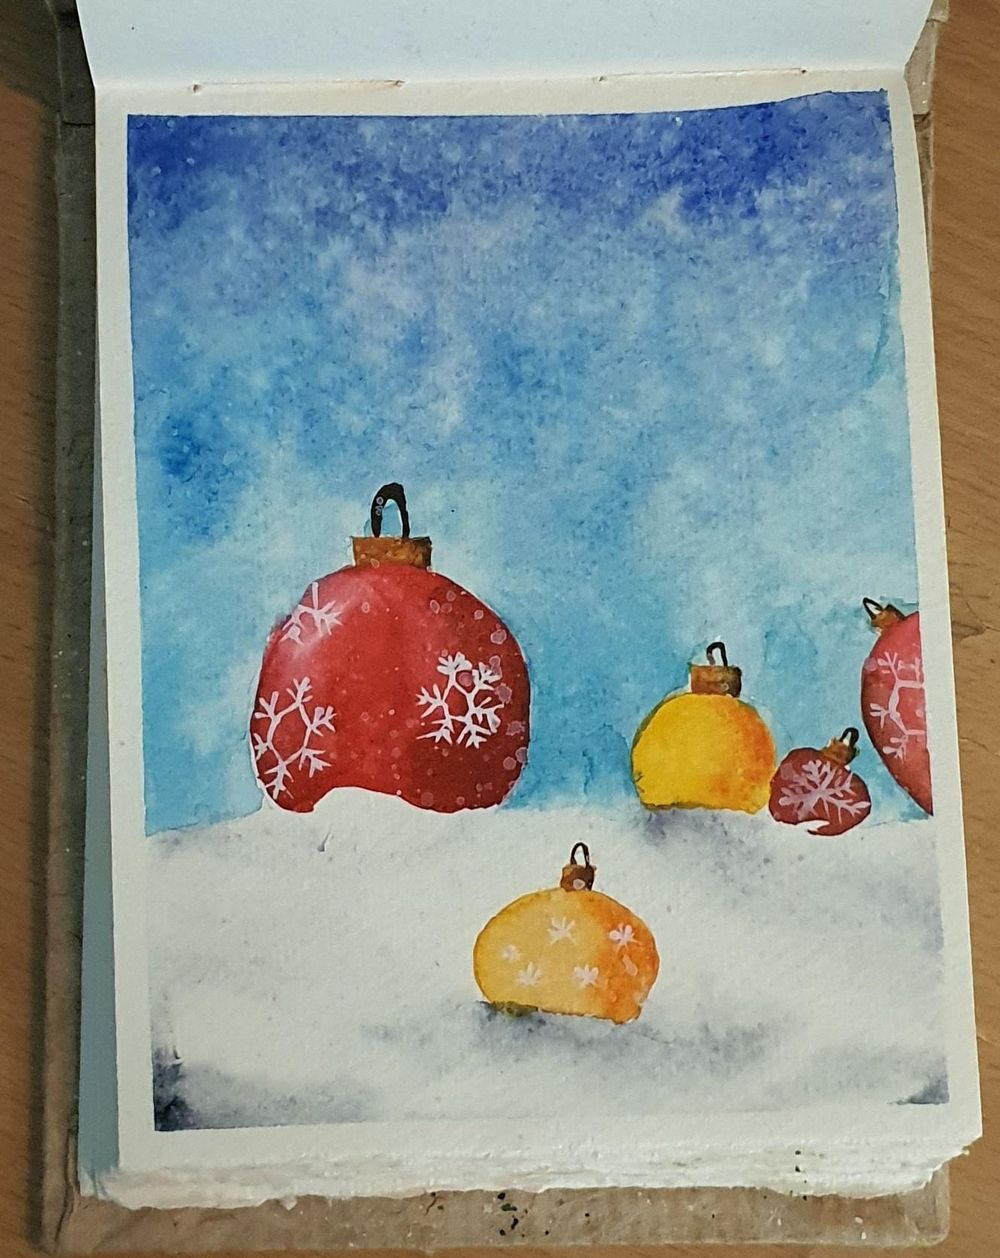 25 days to christmas - image 7 - student project